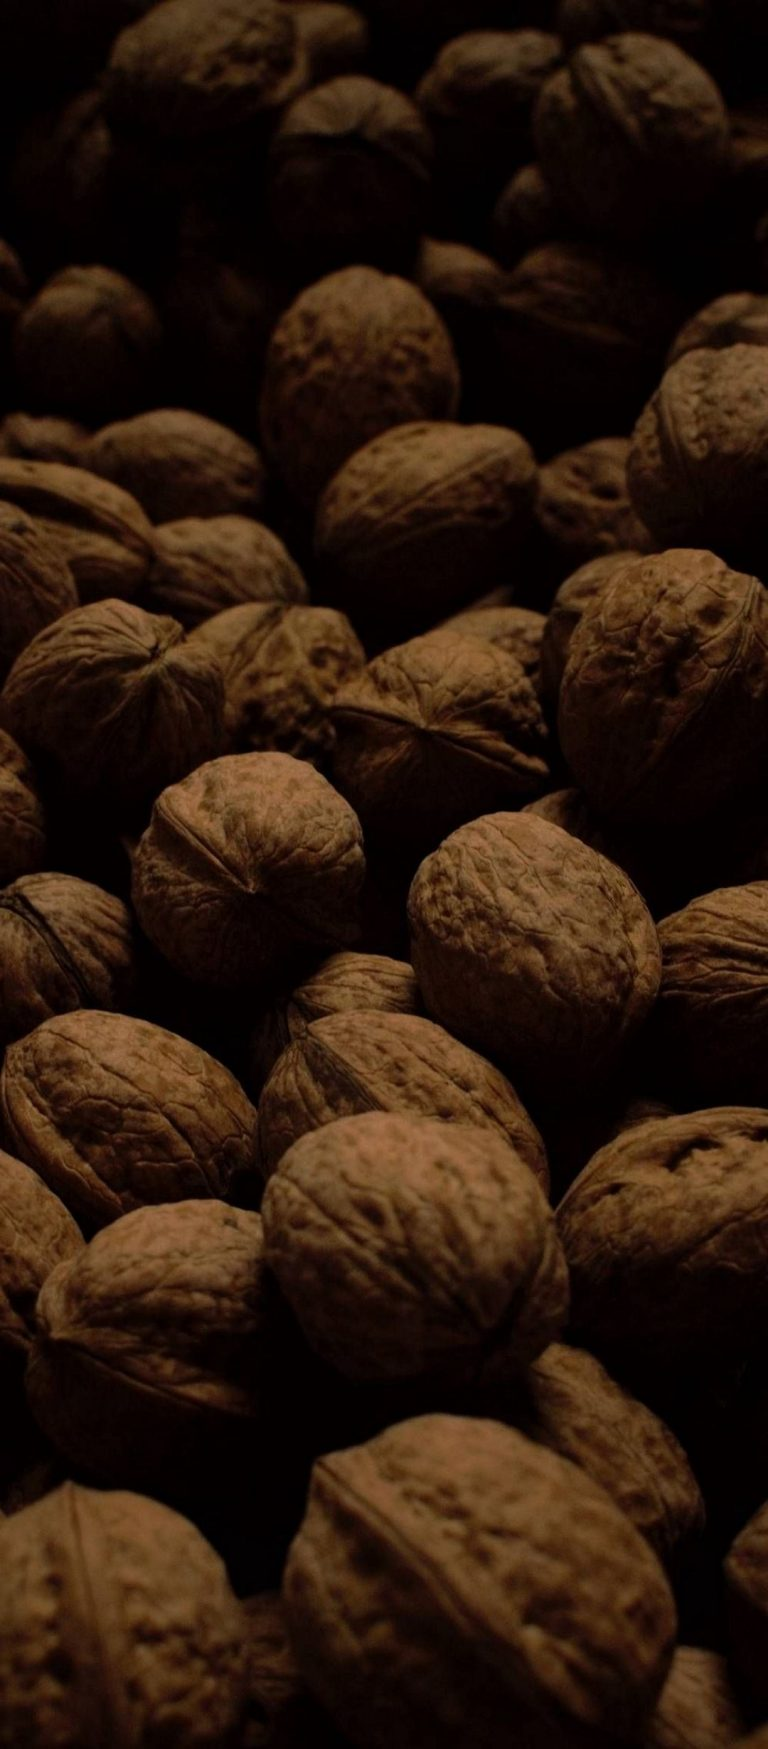 Dark Walnuts Food 1080x2460 768x1749